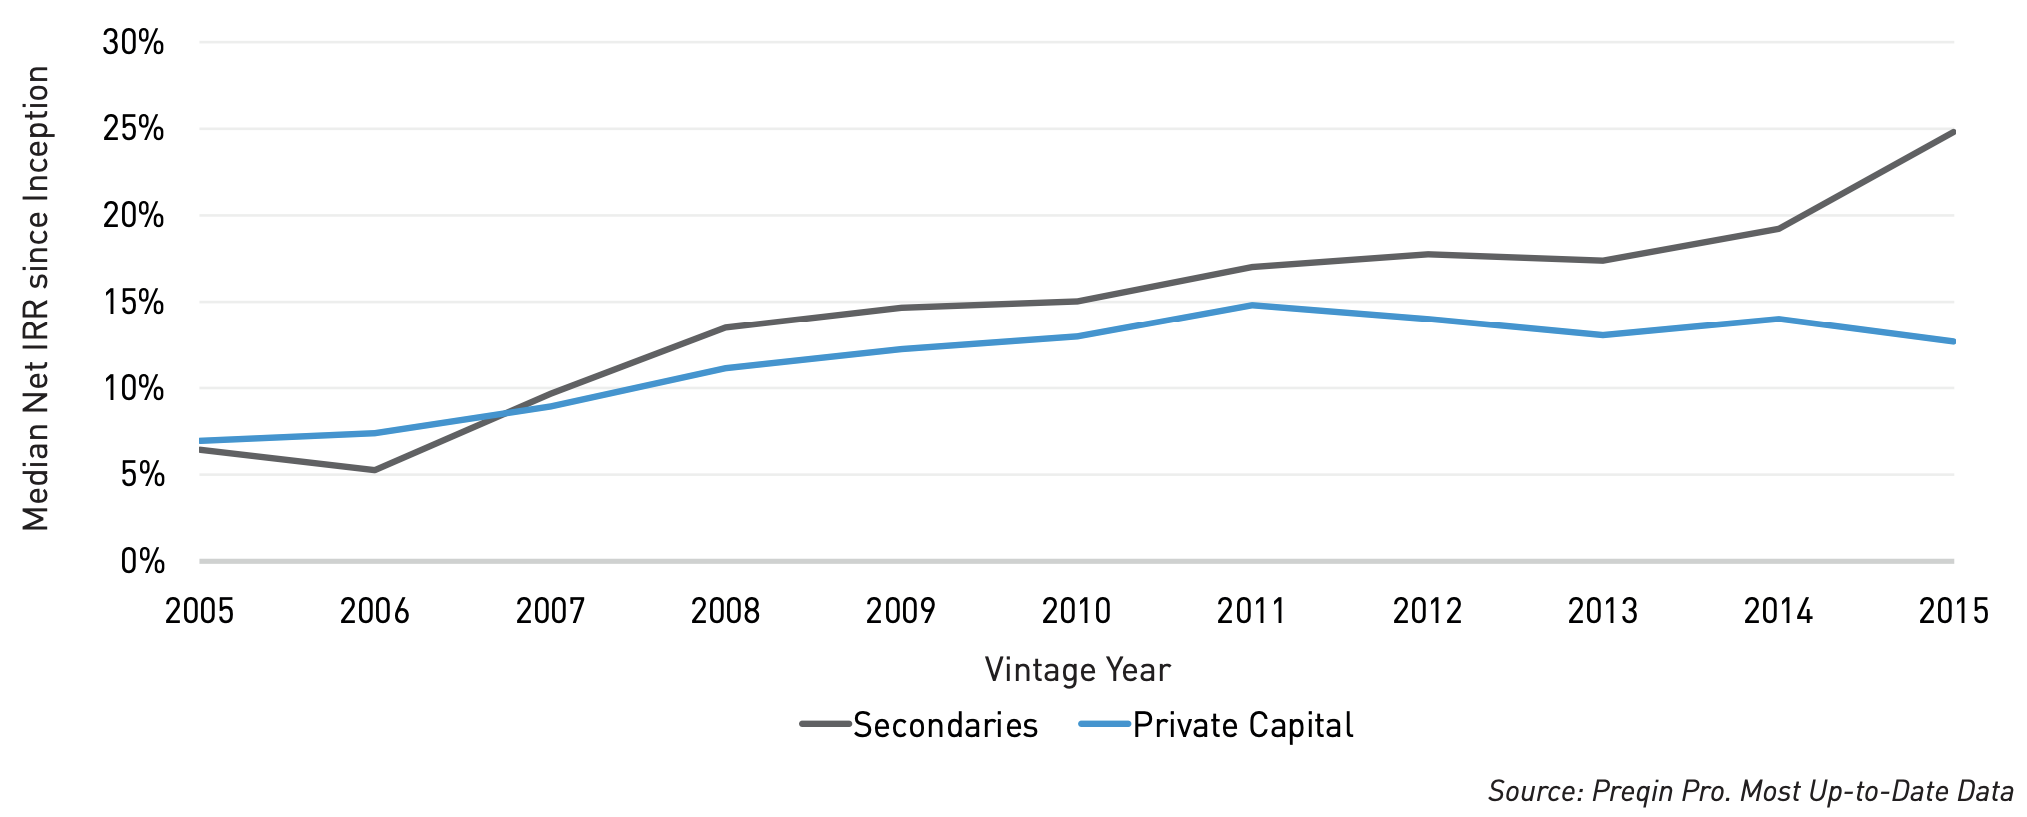 Preqin - Secondaries vs. Private Capital Funds: Median Net IRRs by Vintage Year